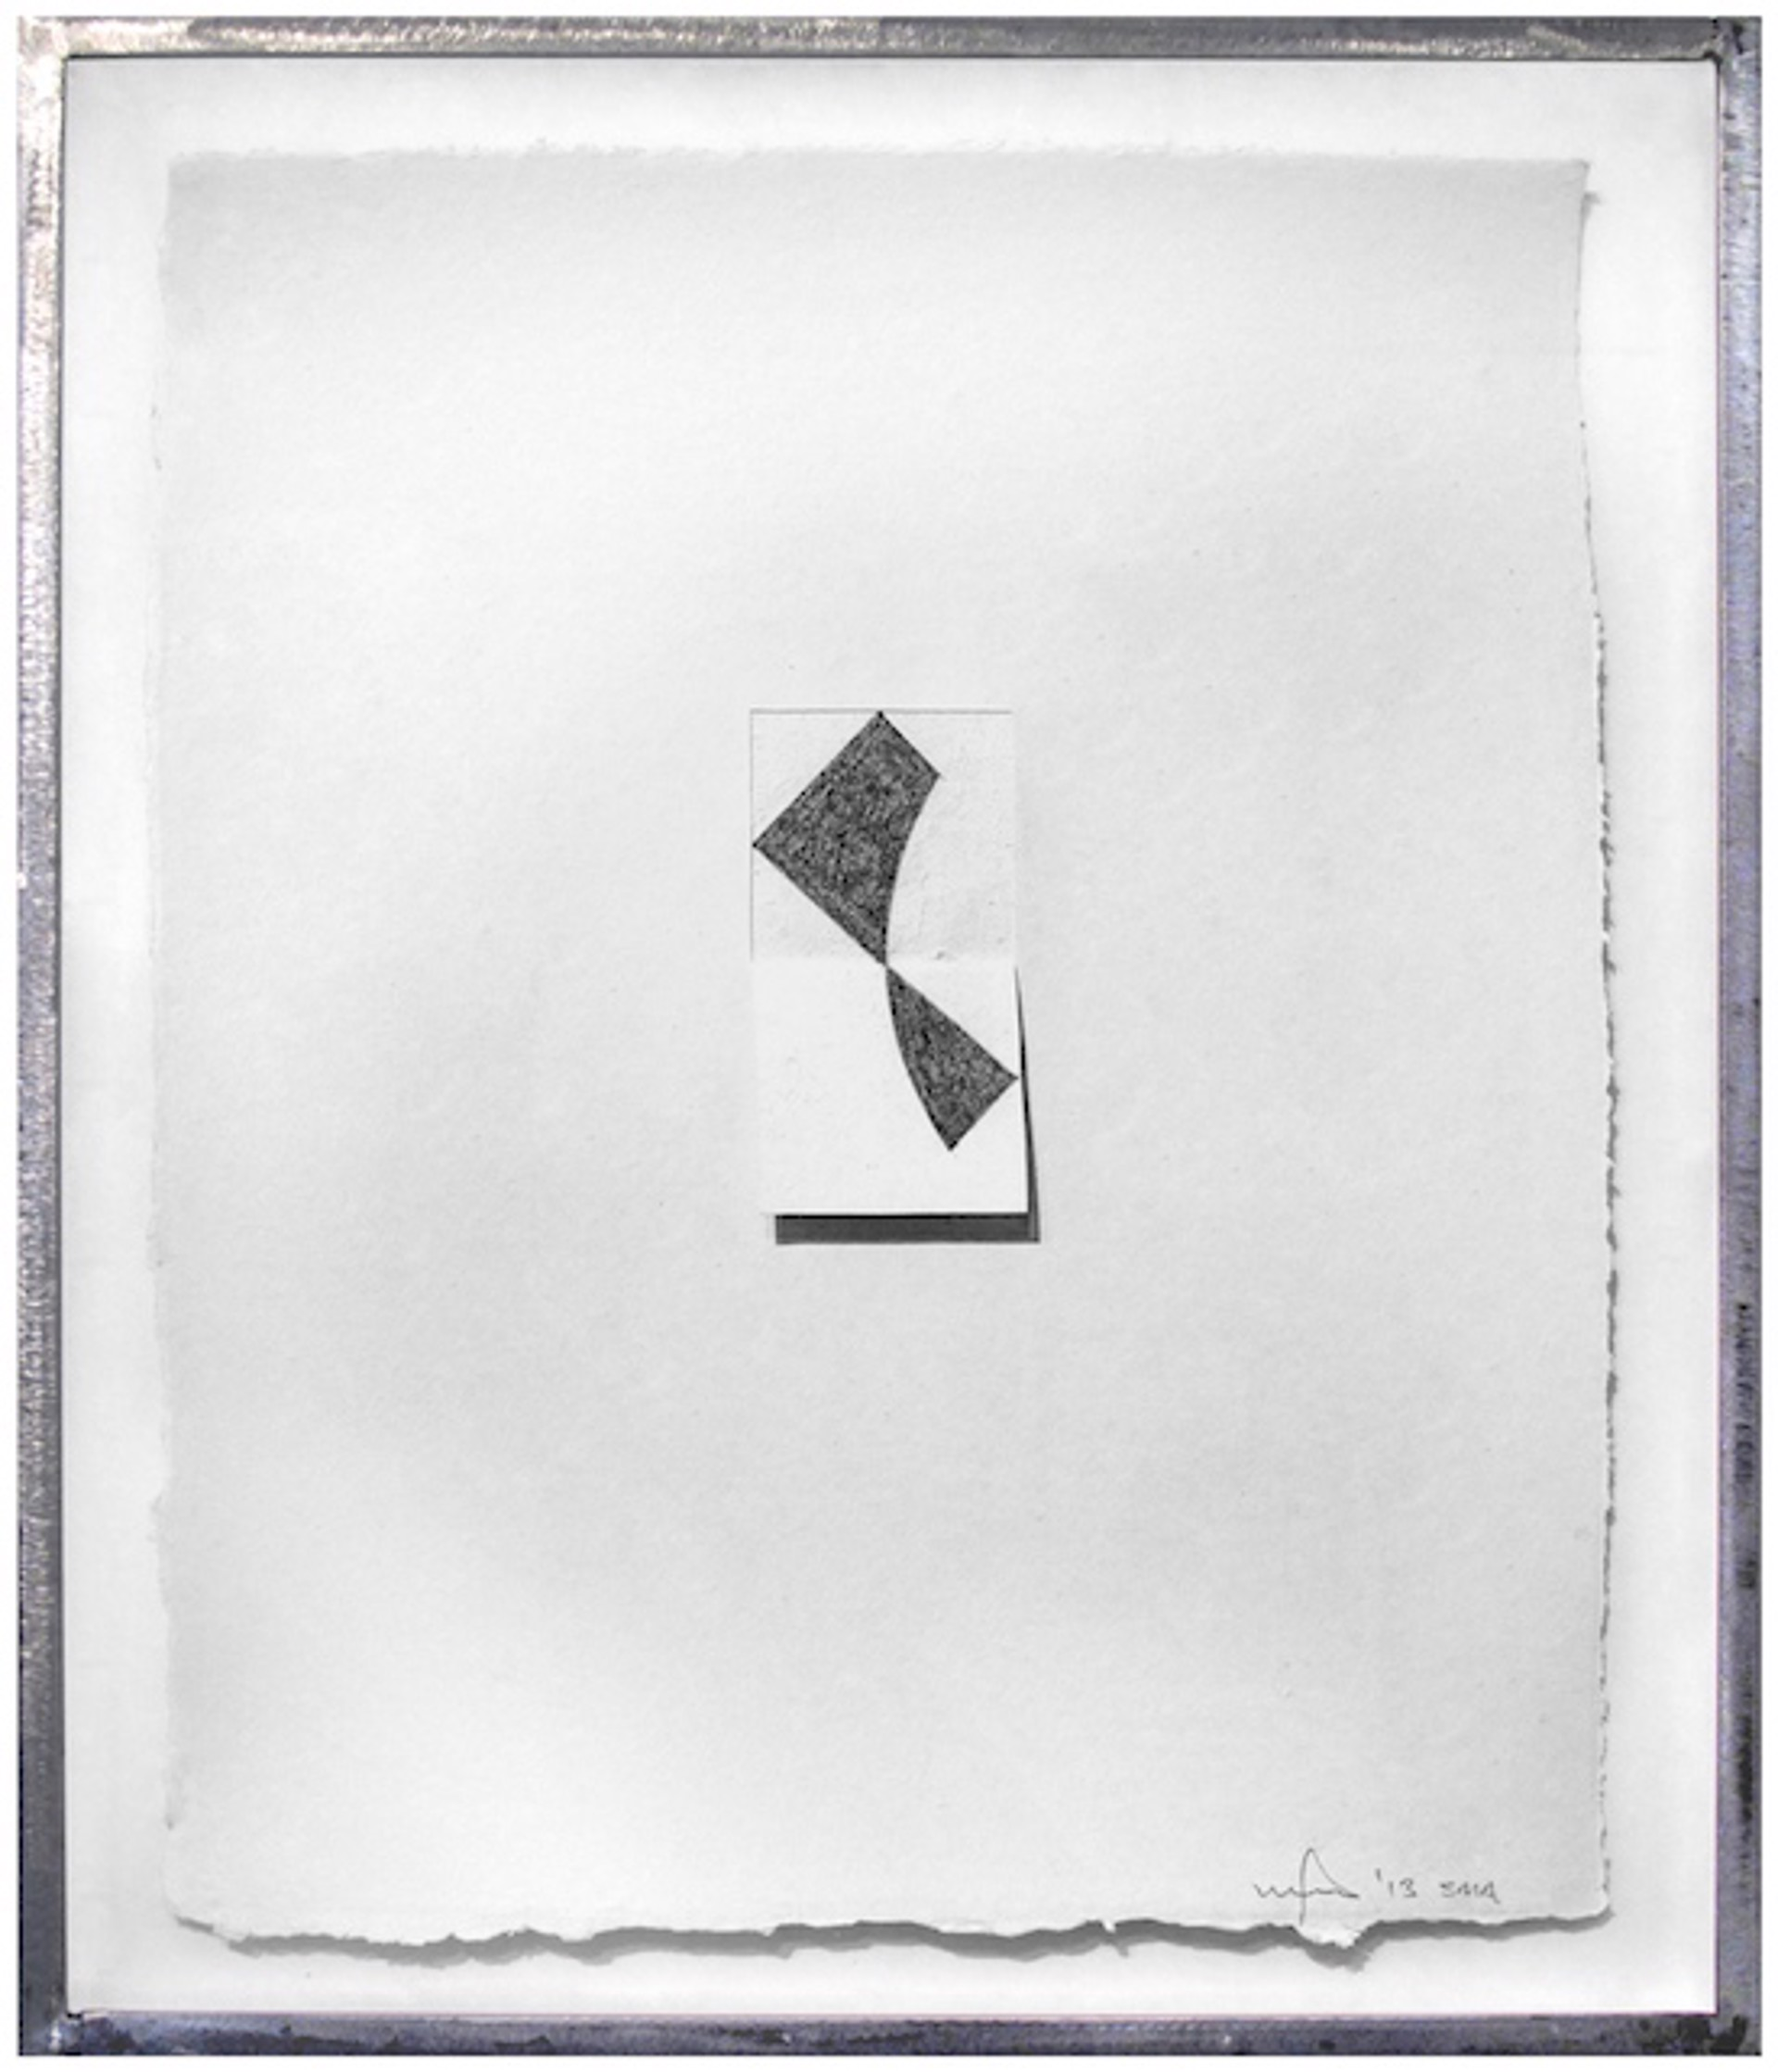 Untitled (SMA VIII) by William Fares